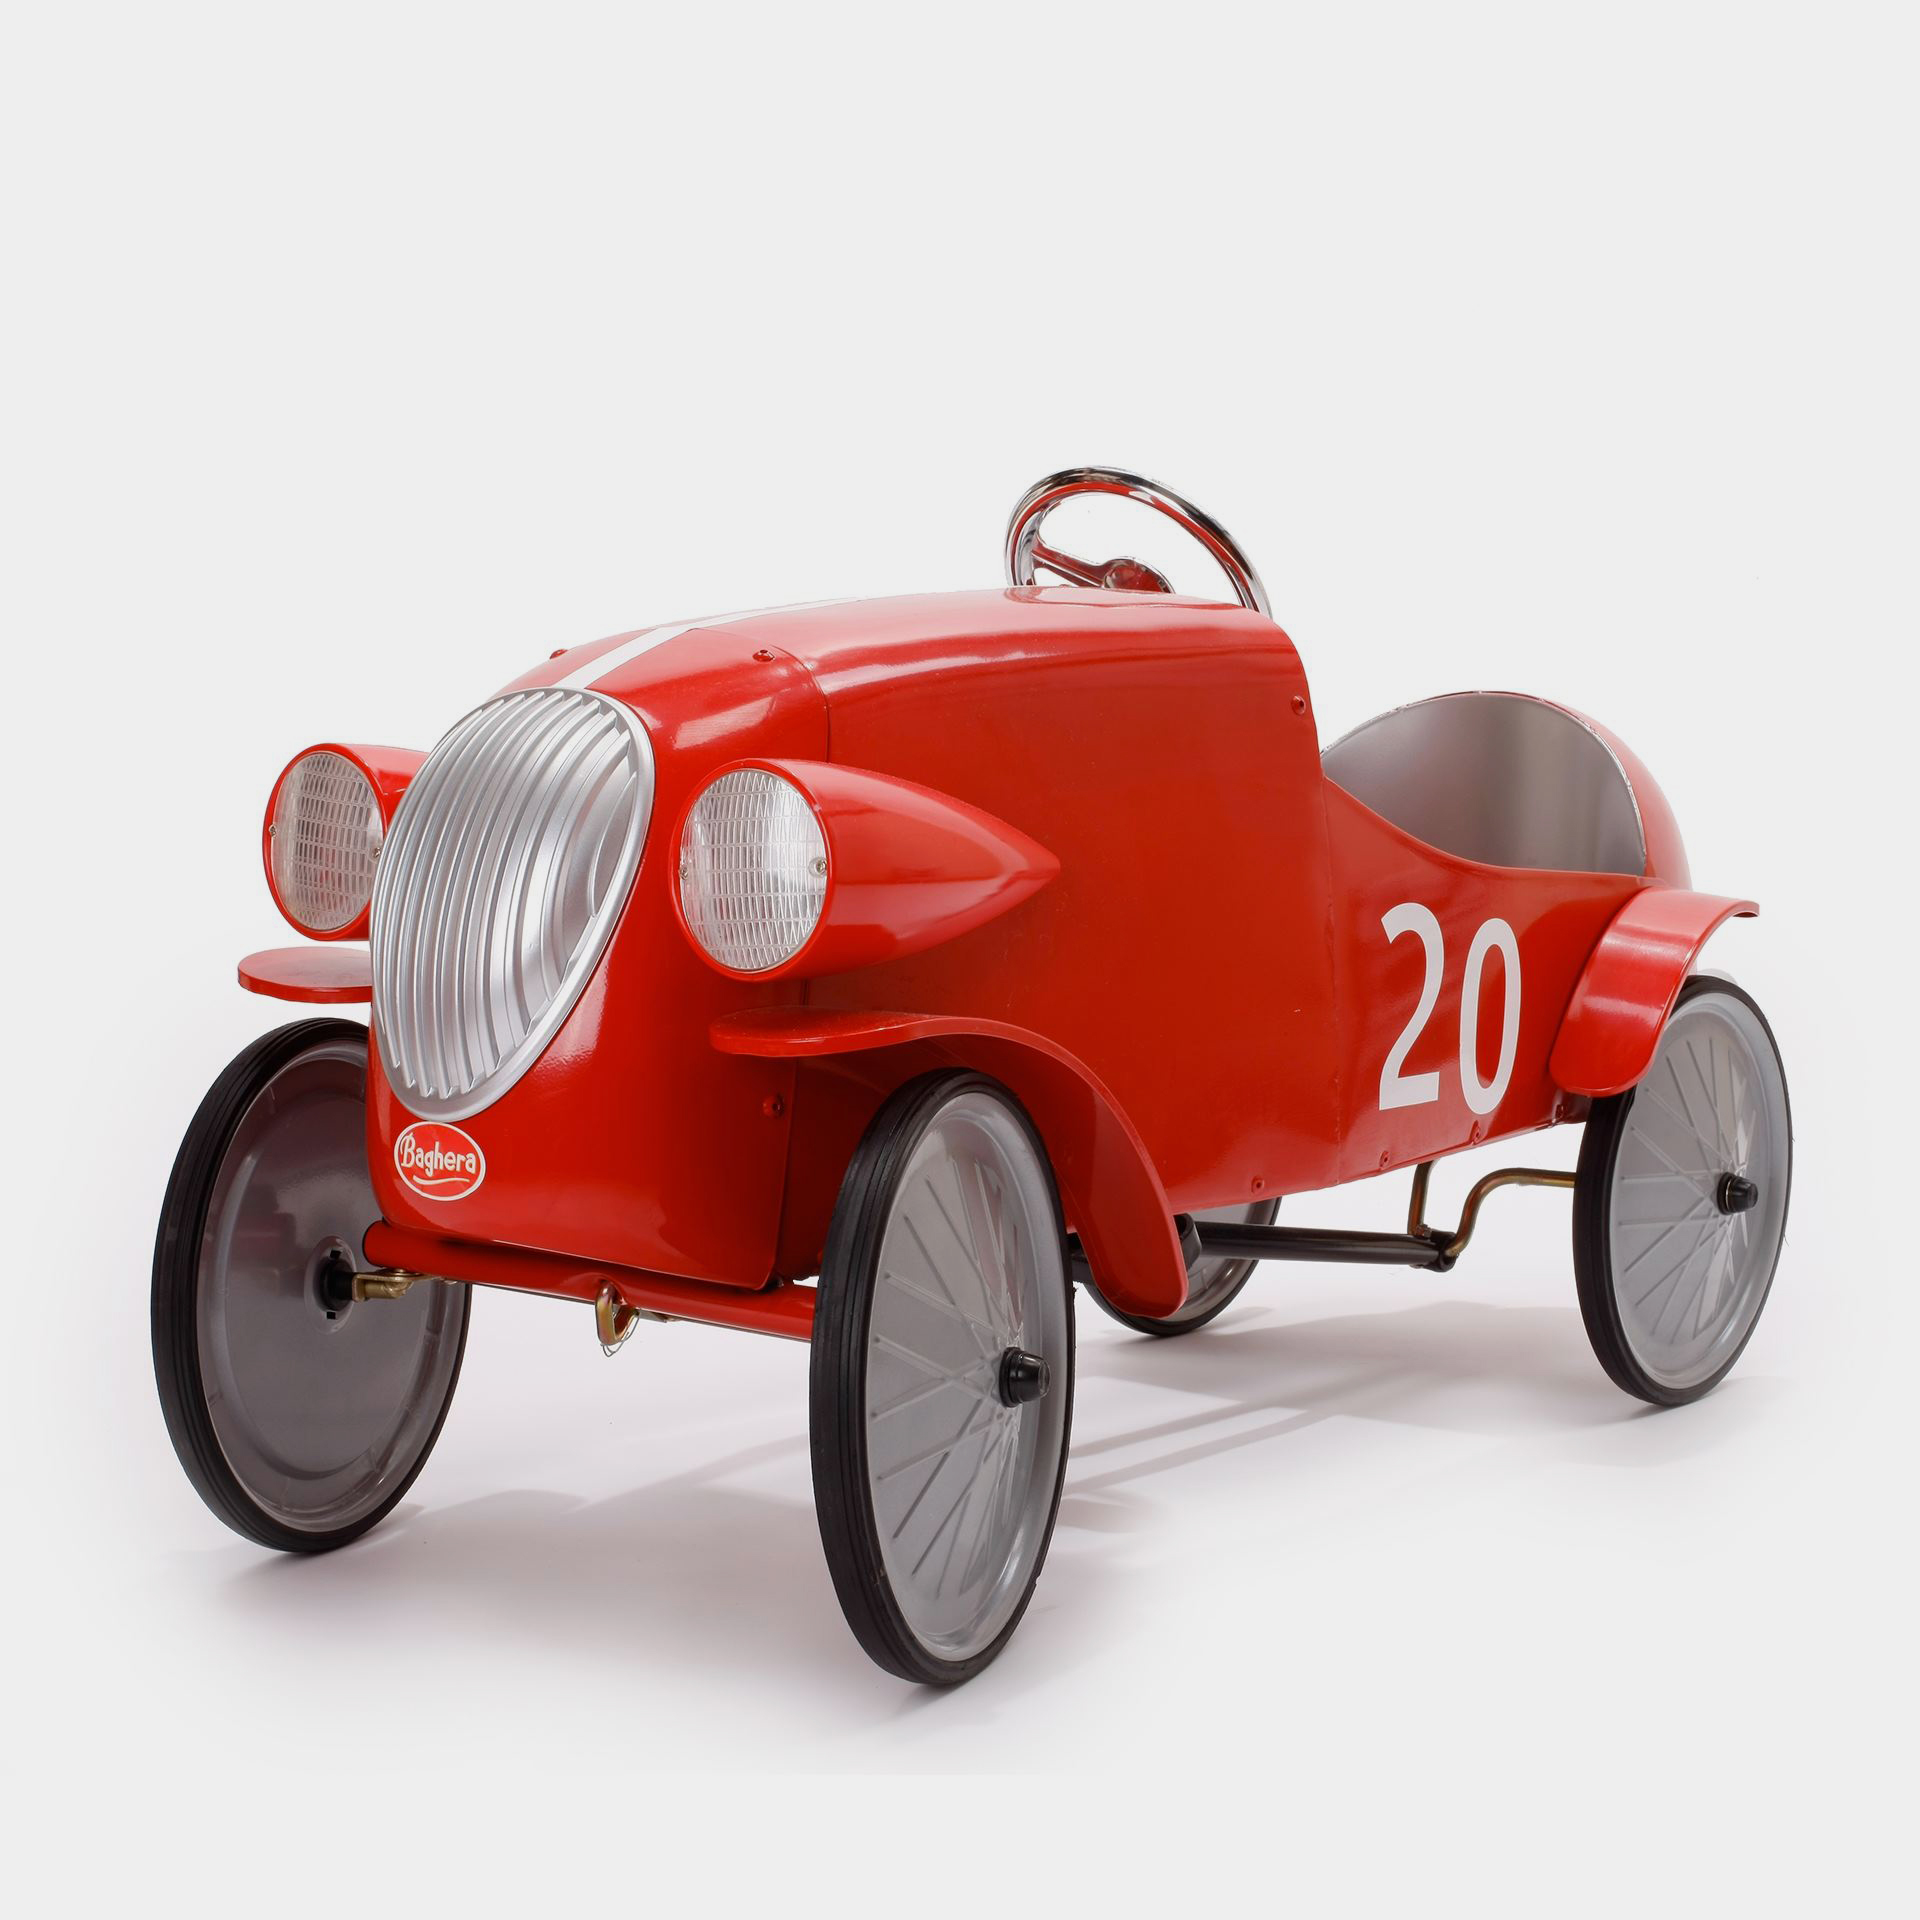 Le Mans Red Pedal Car  Baghera  Classic Pedal Car Co